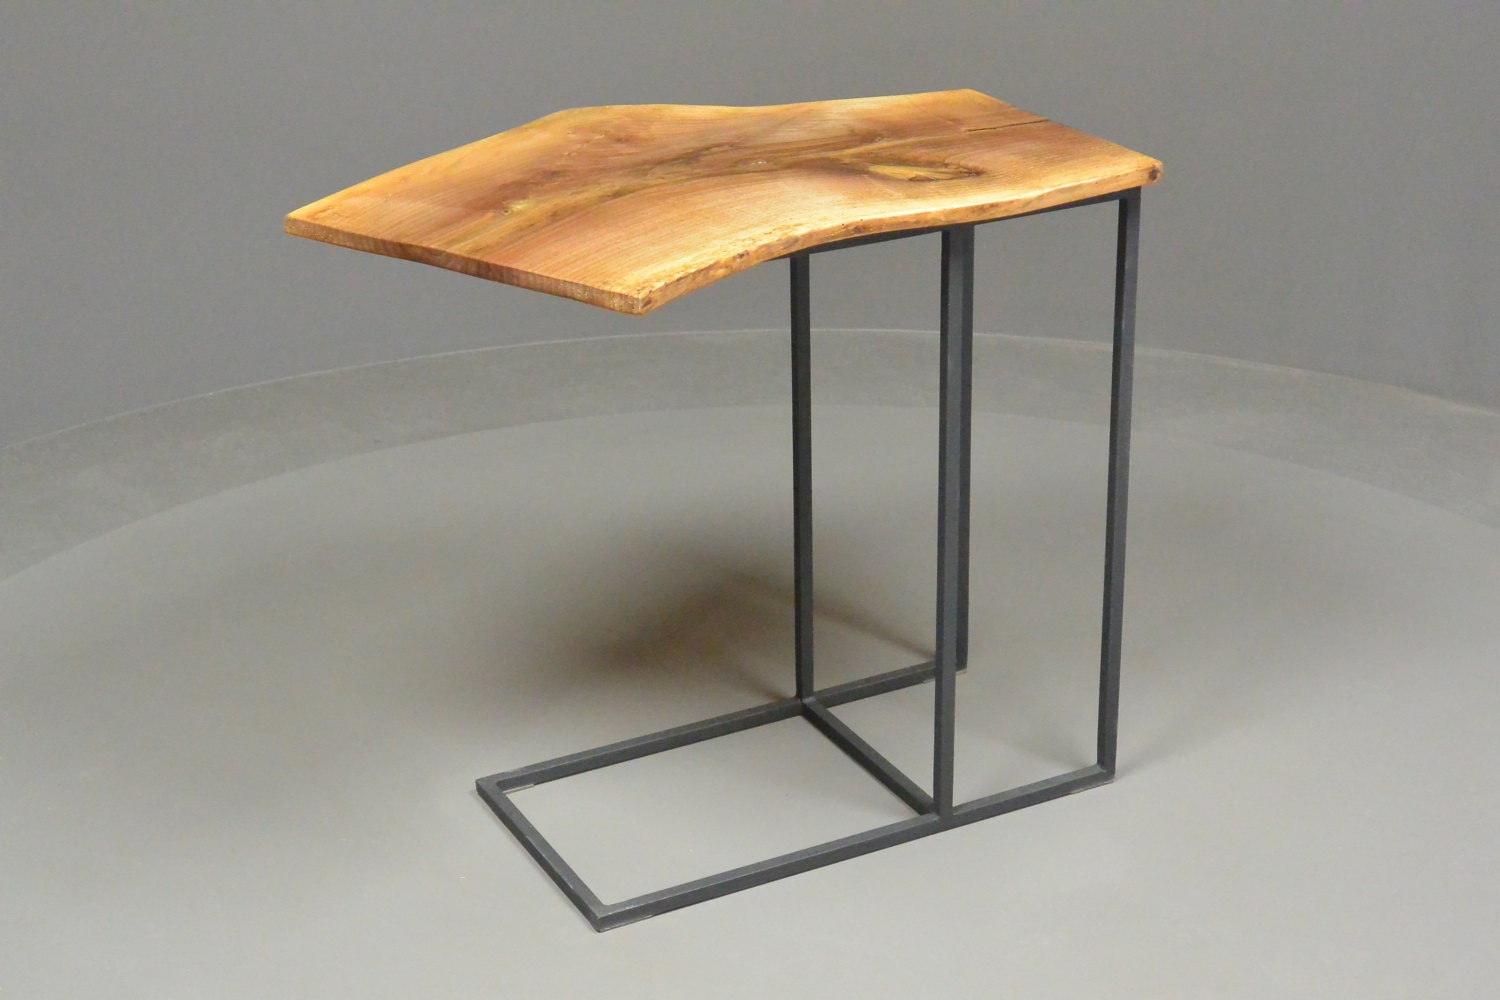 Petite table tablette d 39 appoint en fer forg et noyer for Table d appoint fer forge